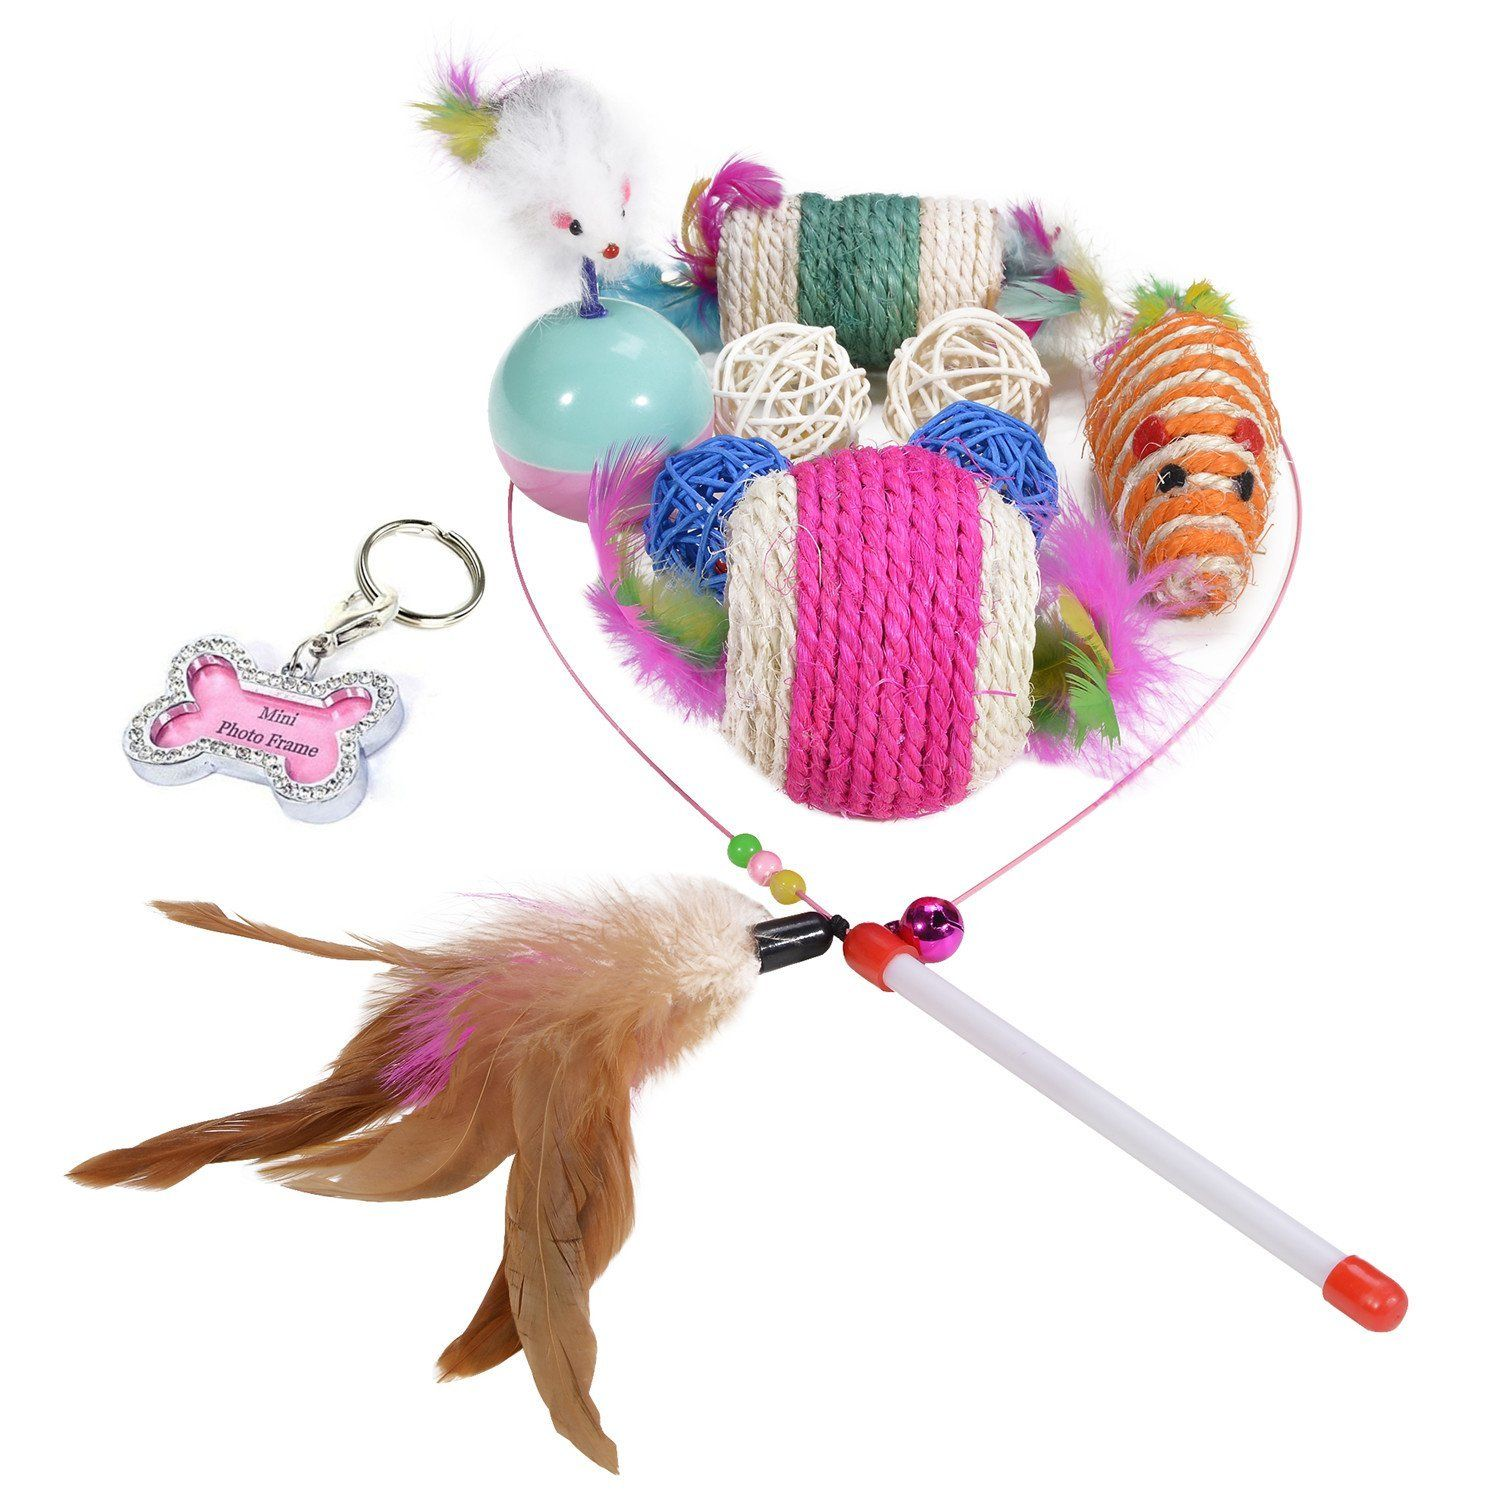 HTKJ Cat Toys 10pcs Teaser/Exerciser Interactive Cat Wand, Sisal Rope Ball Catnip Chew Mice with Feather, Pet ID Tag For Dog Cat ** Check out the image by visiting the link.